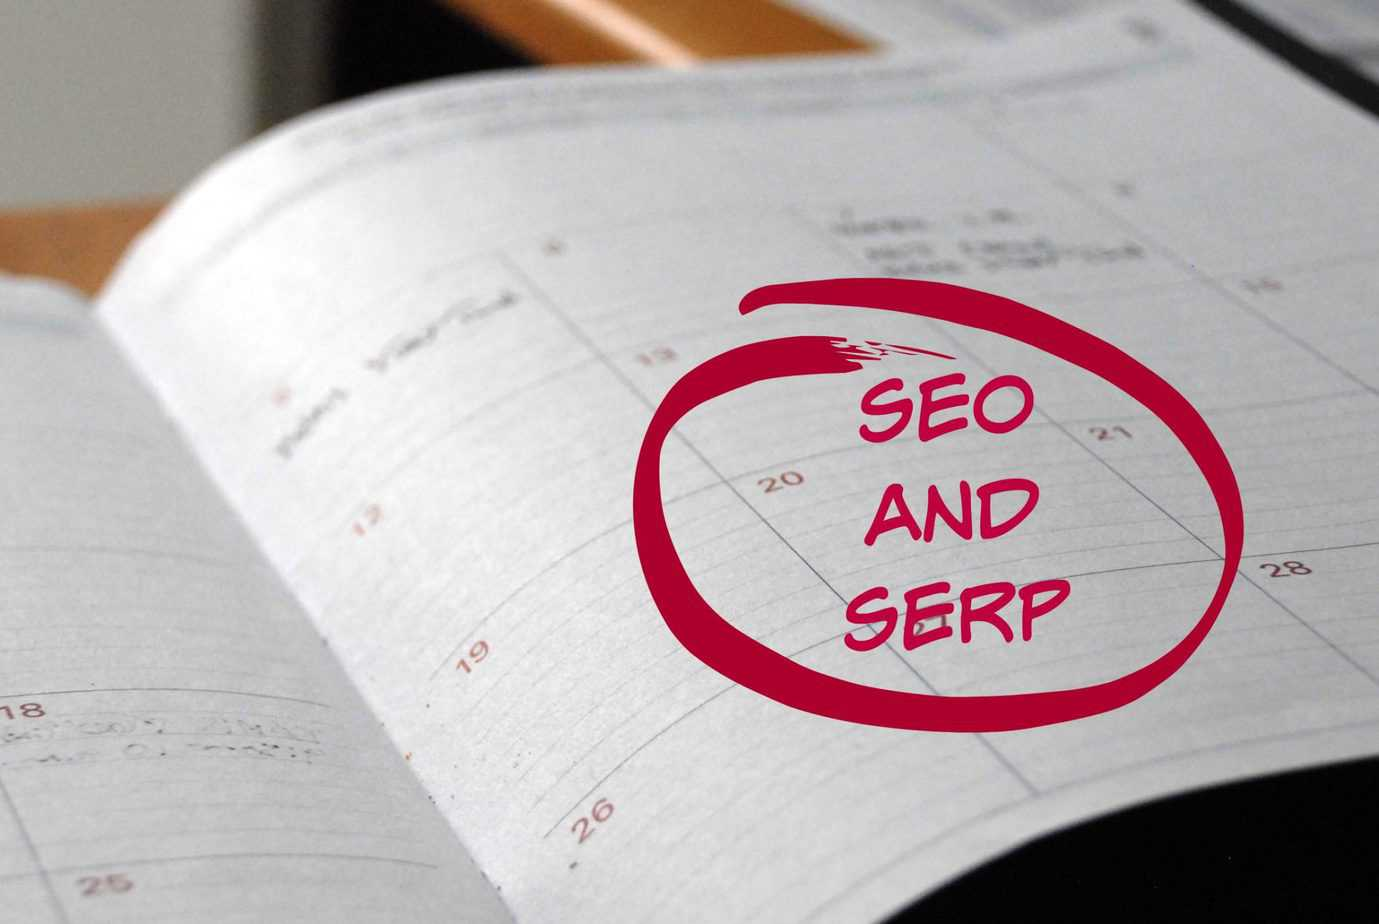 Beginners' Guide to SEO and SERP: Things You Can Do Today